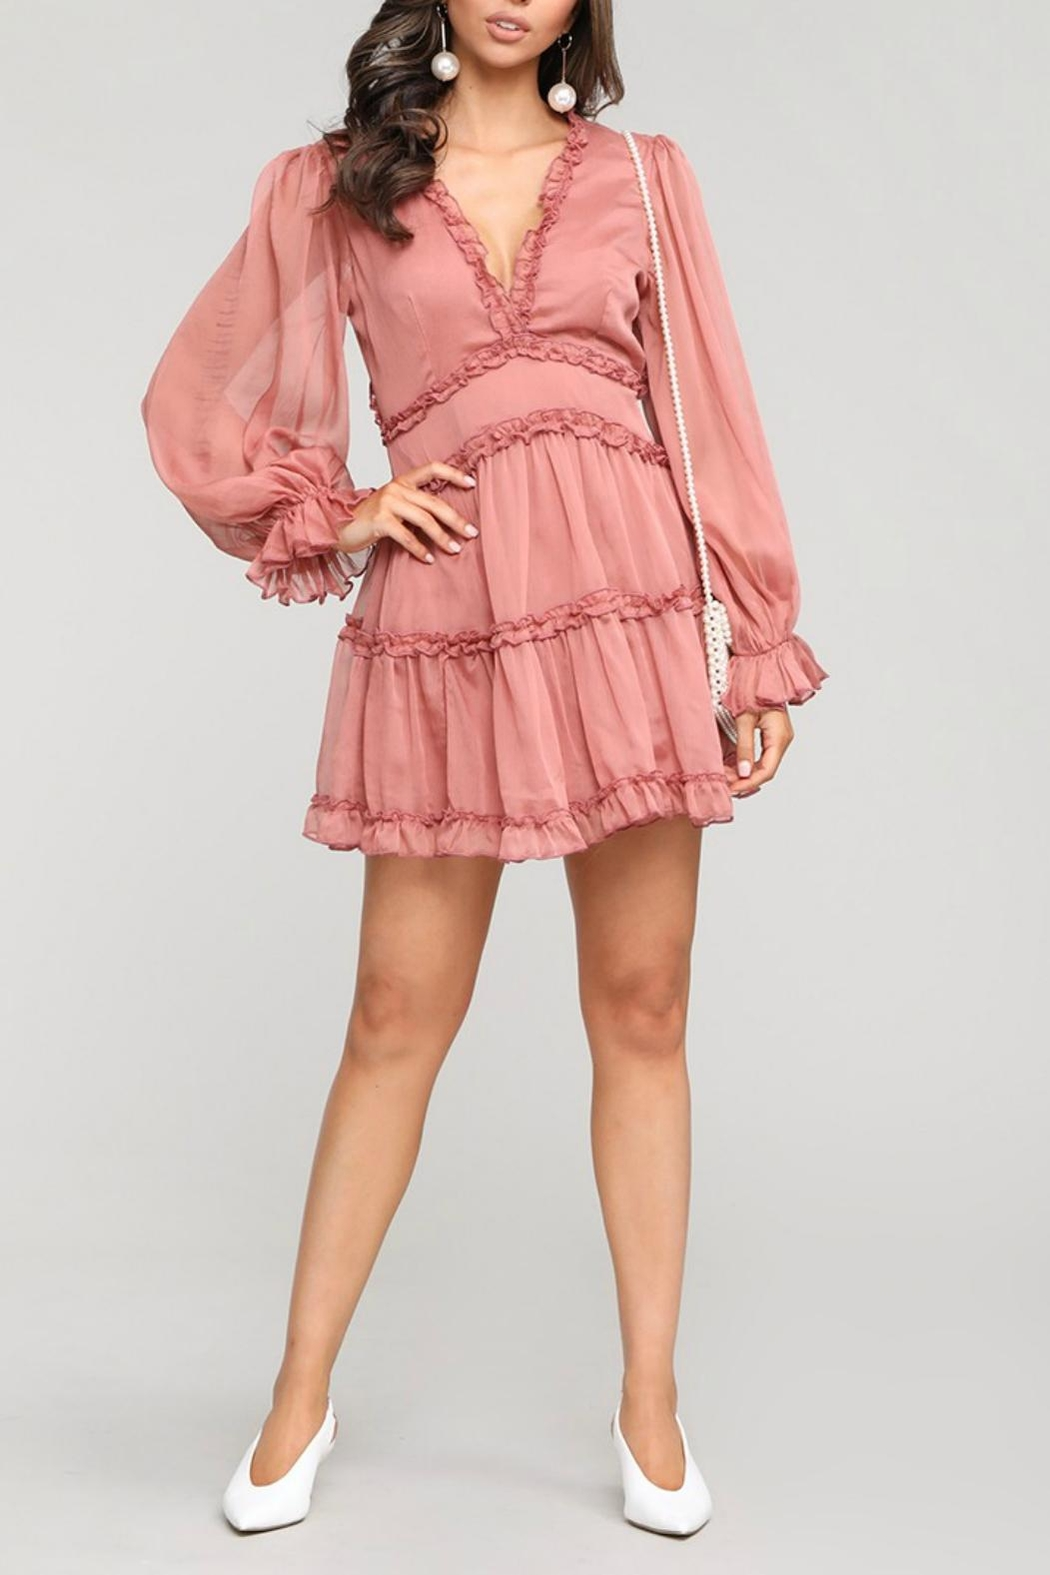 Pretty Little Things Frill Babydoll Dress - Front Cropped Image